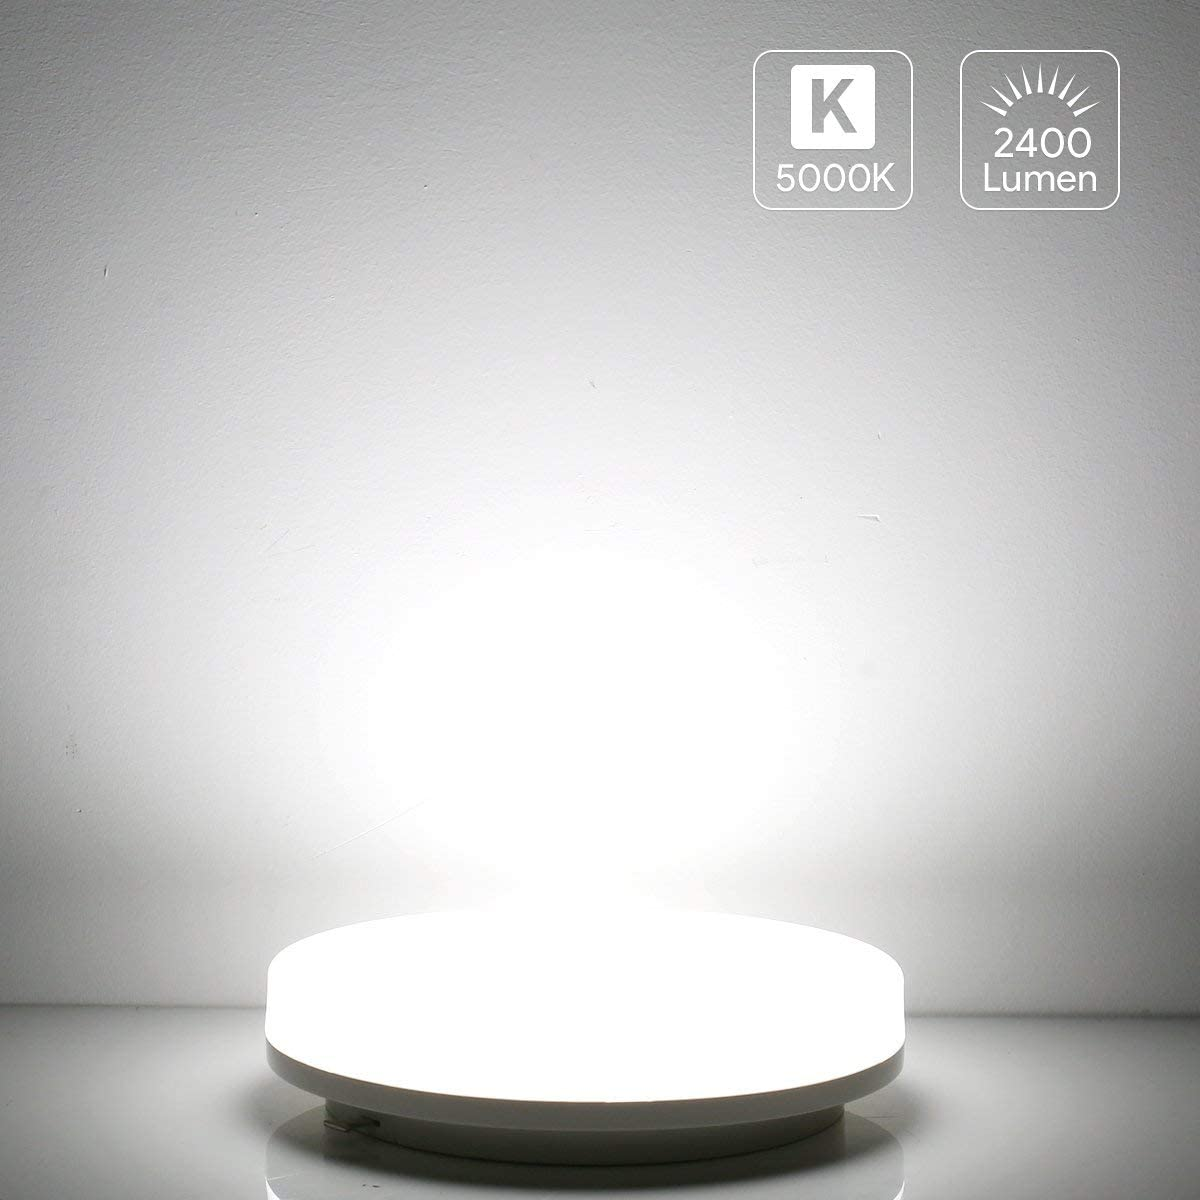 Bedroom Living Room LE Flush Mount Ceiling Light Fixture Waterproof IP54 LED Ceiling Lights for Bathroom 8.7 Inch 15W 100W Equivalent Hallway Porch 1250lm Non Dimmable Ceiling Lamp for Kitchen